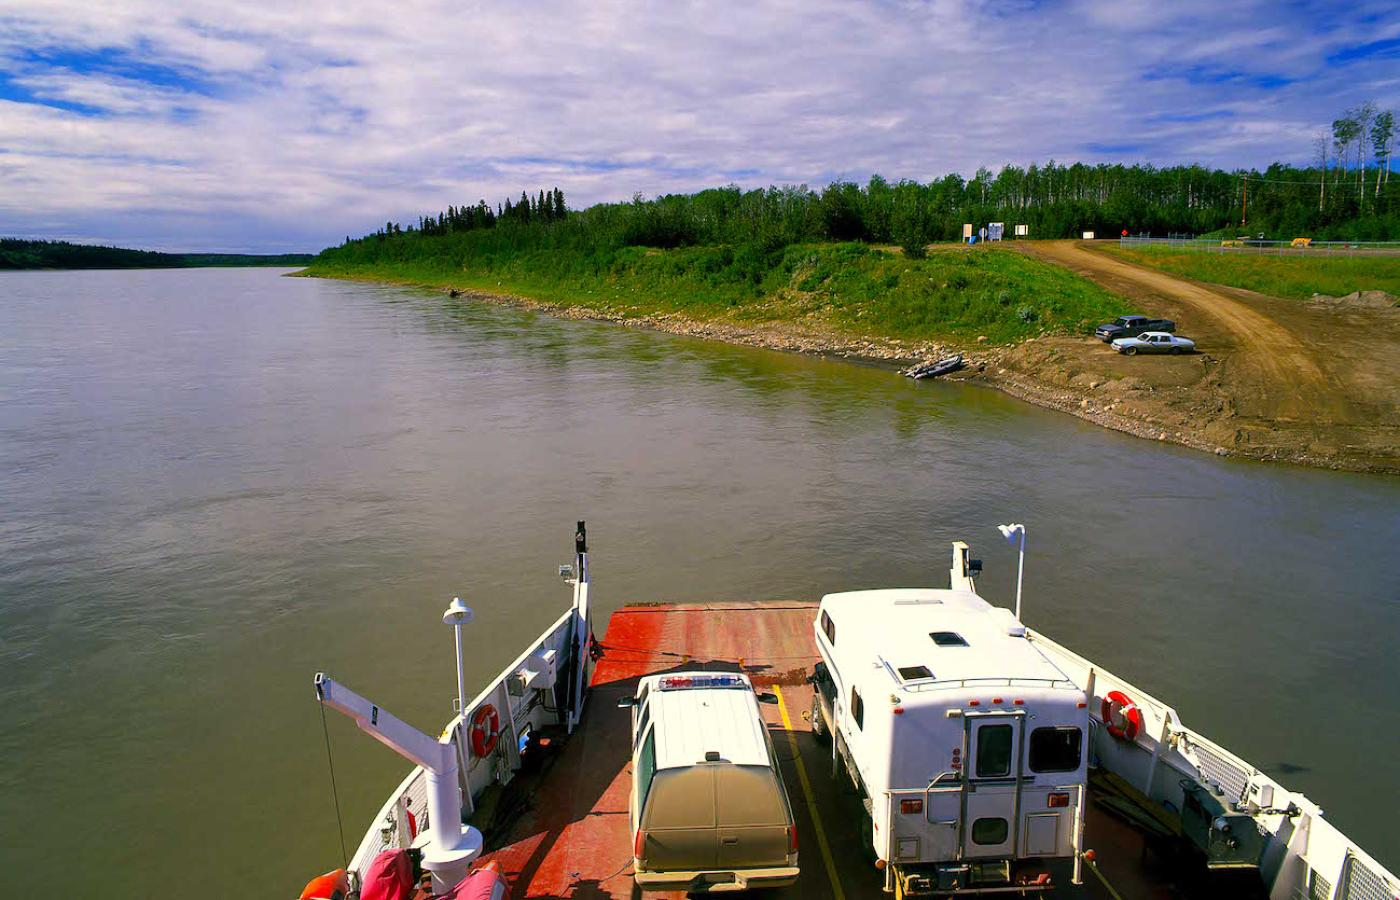 Say hello to the ferryman plying his boat over a wild river in Canada's Northwest Territories